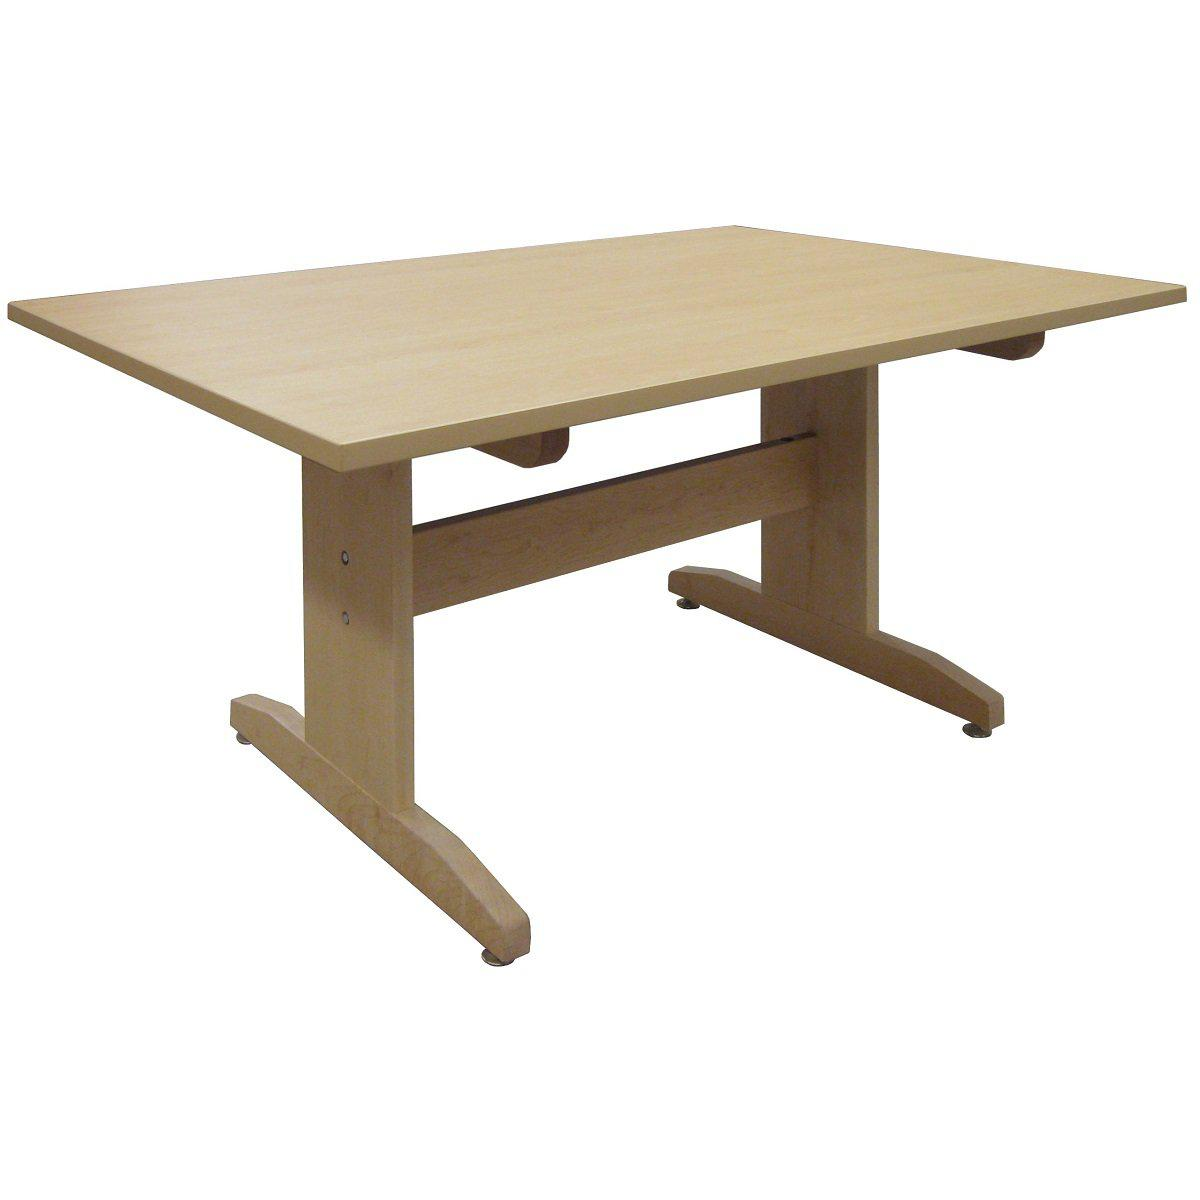 "Art Table, 42"" x 60"" Maple Grain Patterned HPL Top, 36"" High"